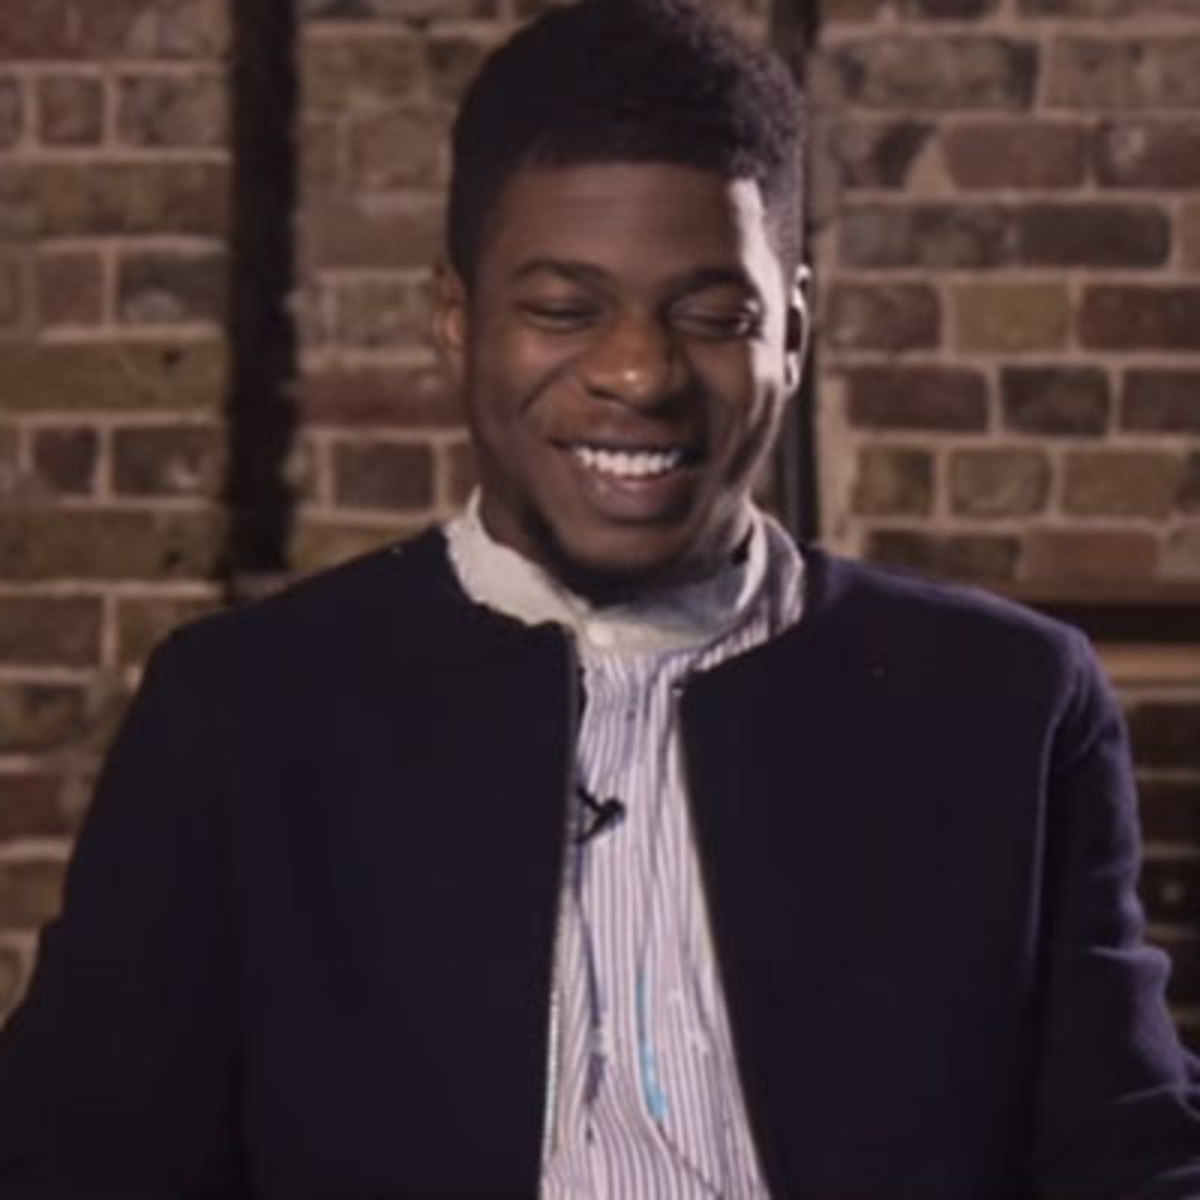 mick-jenkins-noisey-interview.jpg